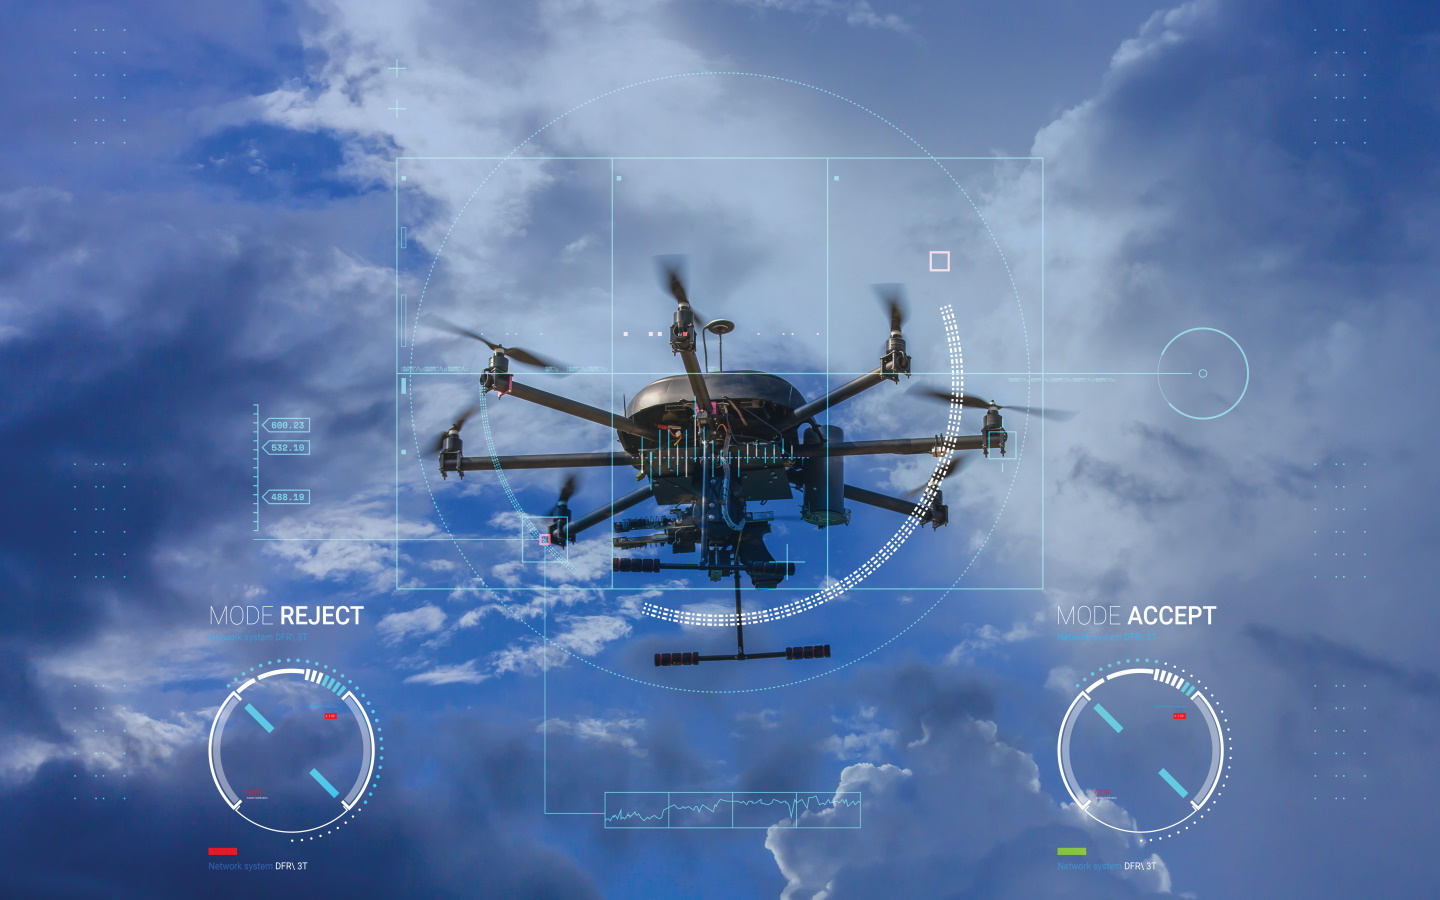 Ottawa Airport Authority, NAV CANADA and QinetiQ Canada Partner to Trial Drone Detection Technology at YOW (Ottawa's International Airport)